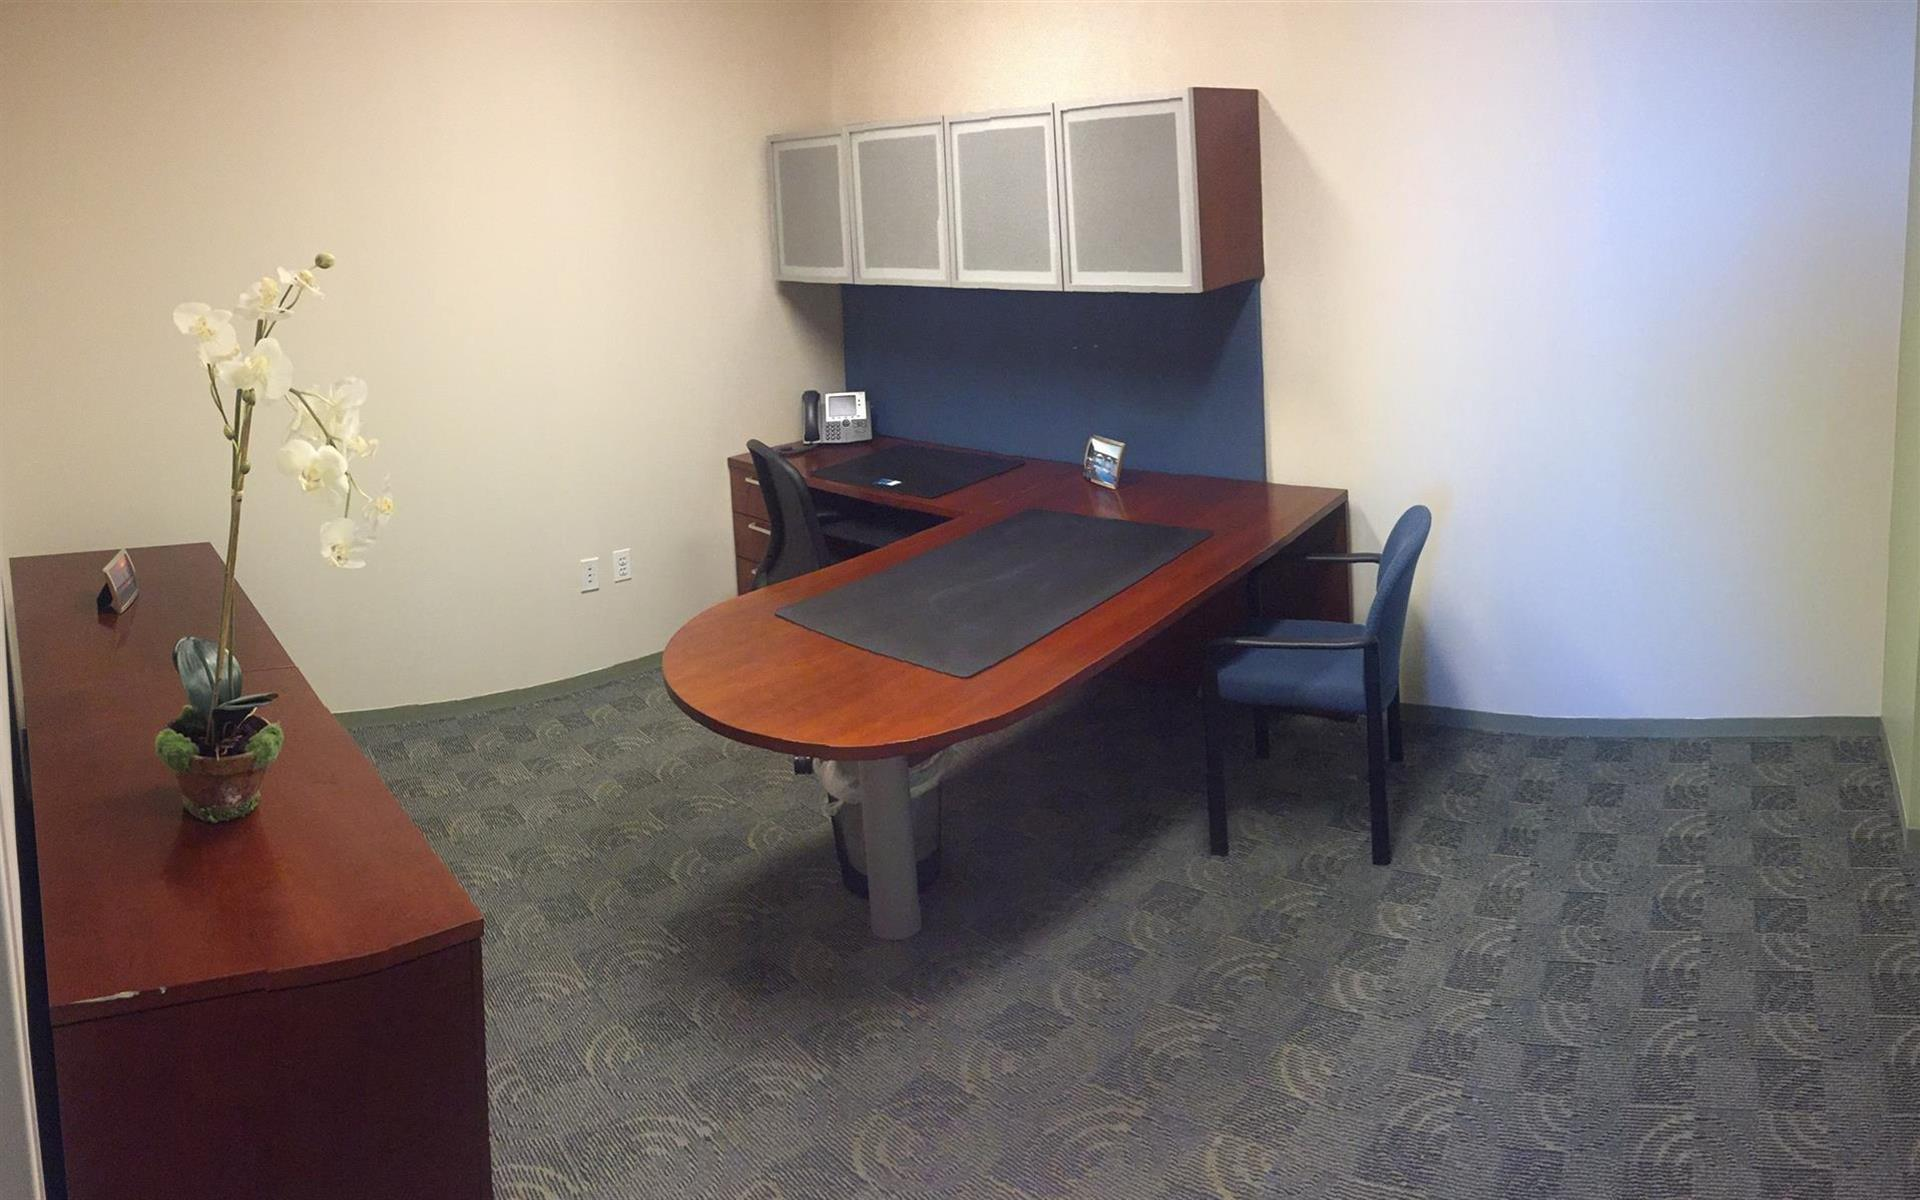 Carr Workplaces Rosslyn - Potomac Towers - Interior Team Room for 2-3